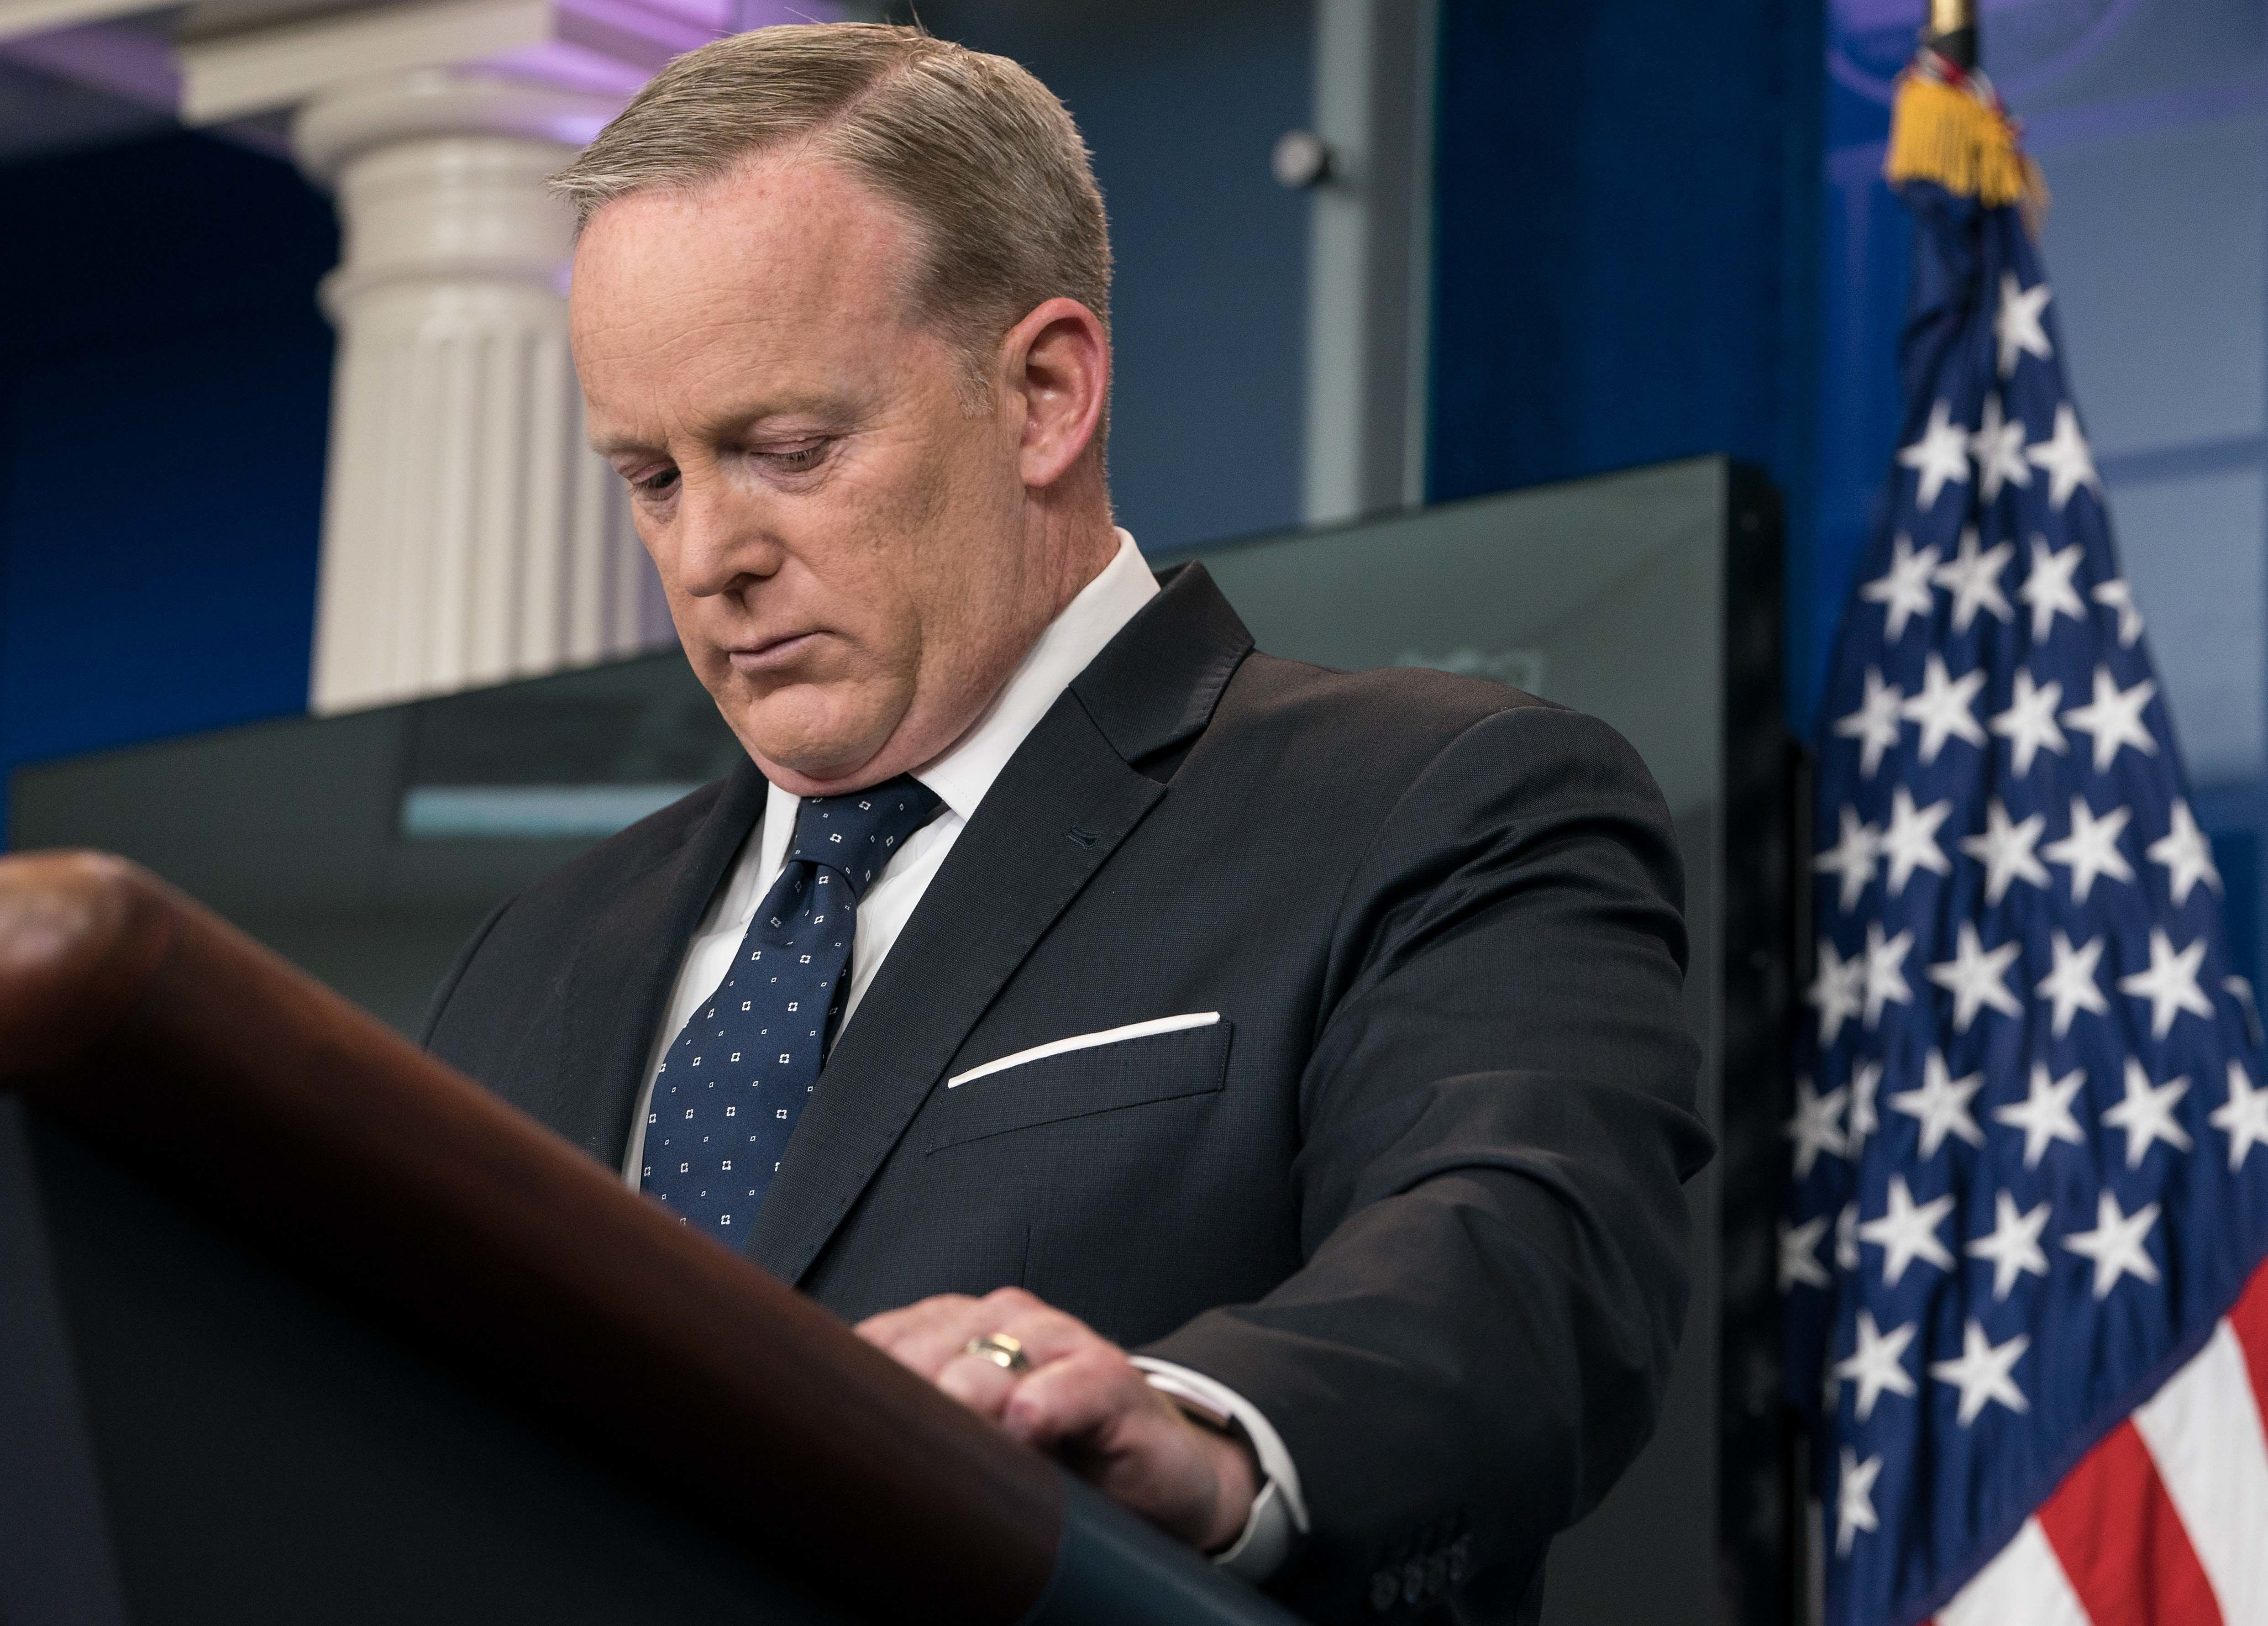 White House Continues To Leave The Press And Public In The